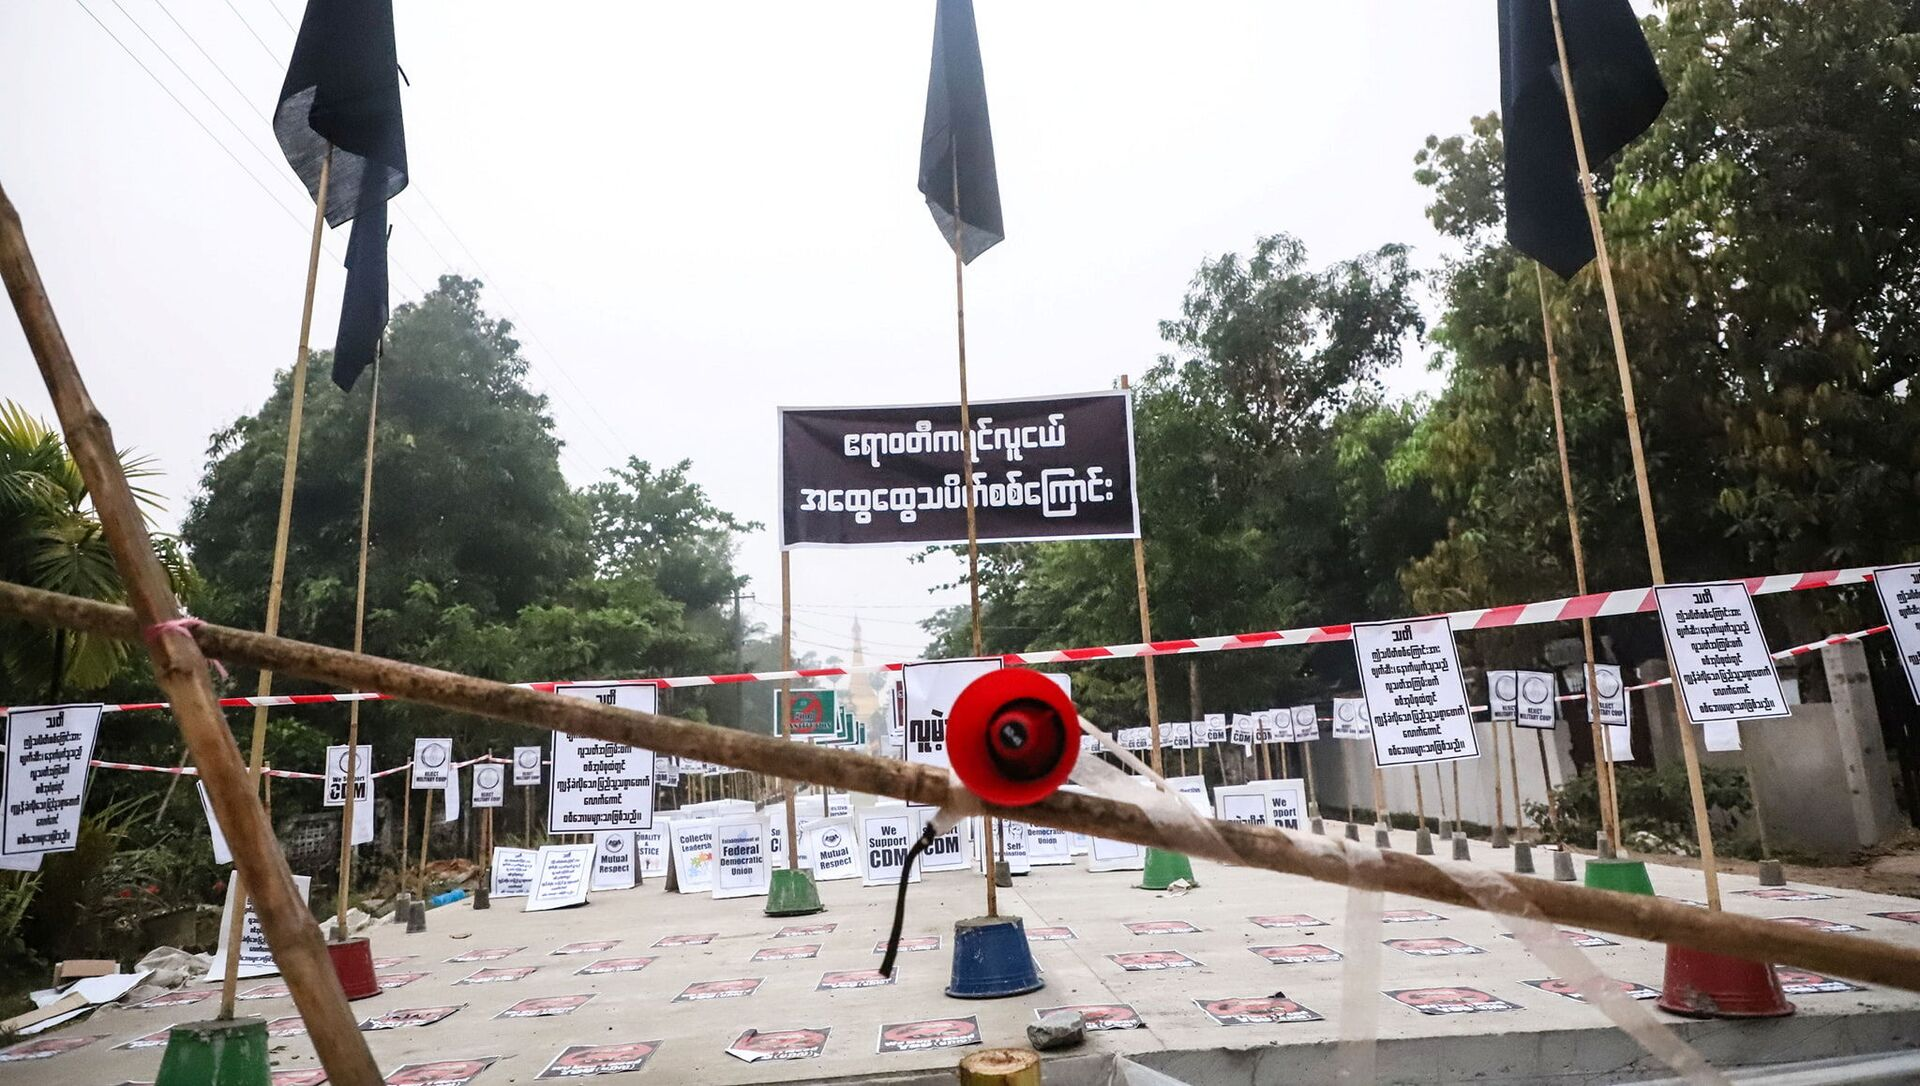 View of a loudspeaker and signs during a protest without demonstrators present in Nyaungdon, Ayeyarwady, Myanmar - Sputnik International, 1920, 27.07.2021